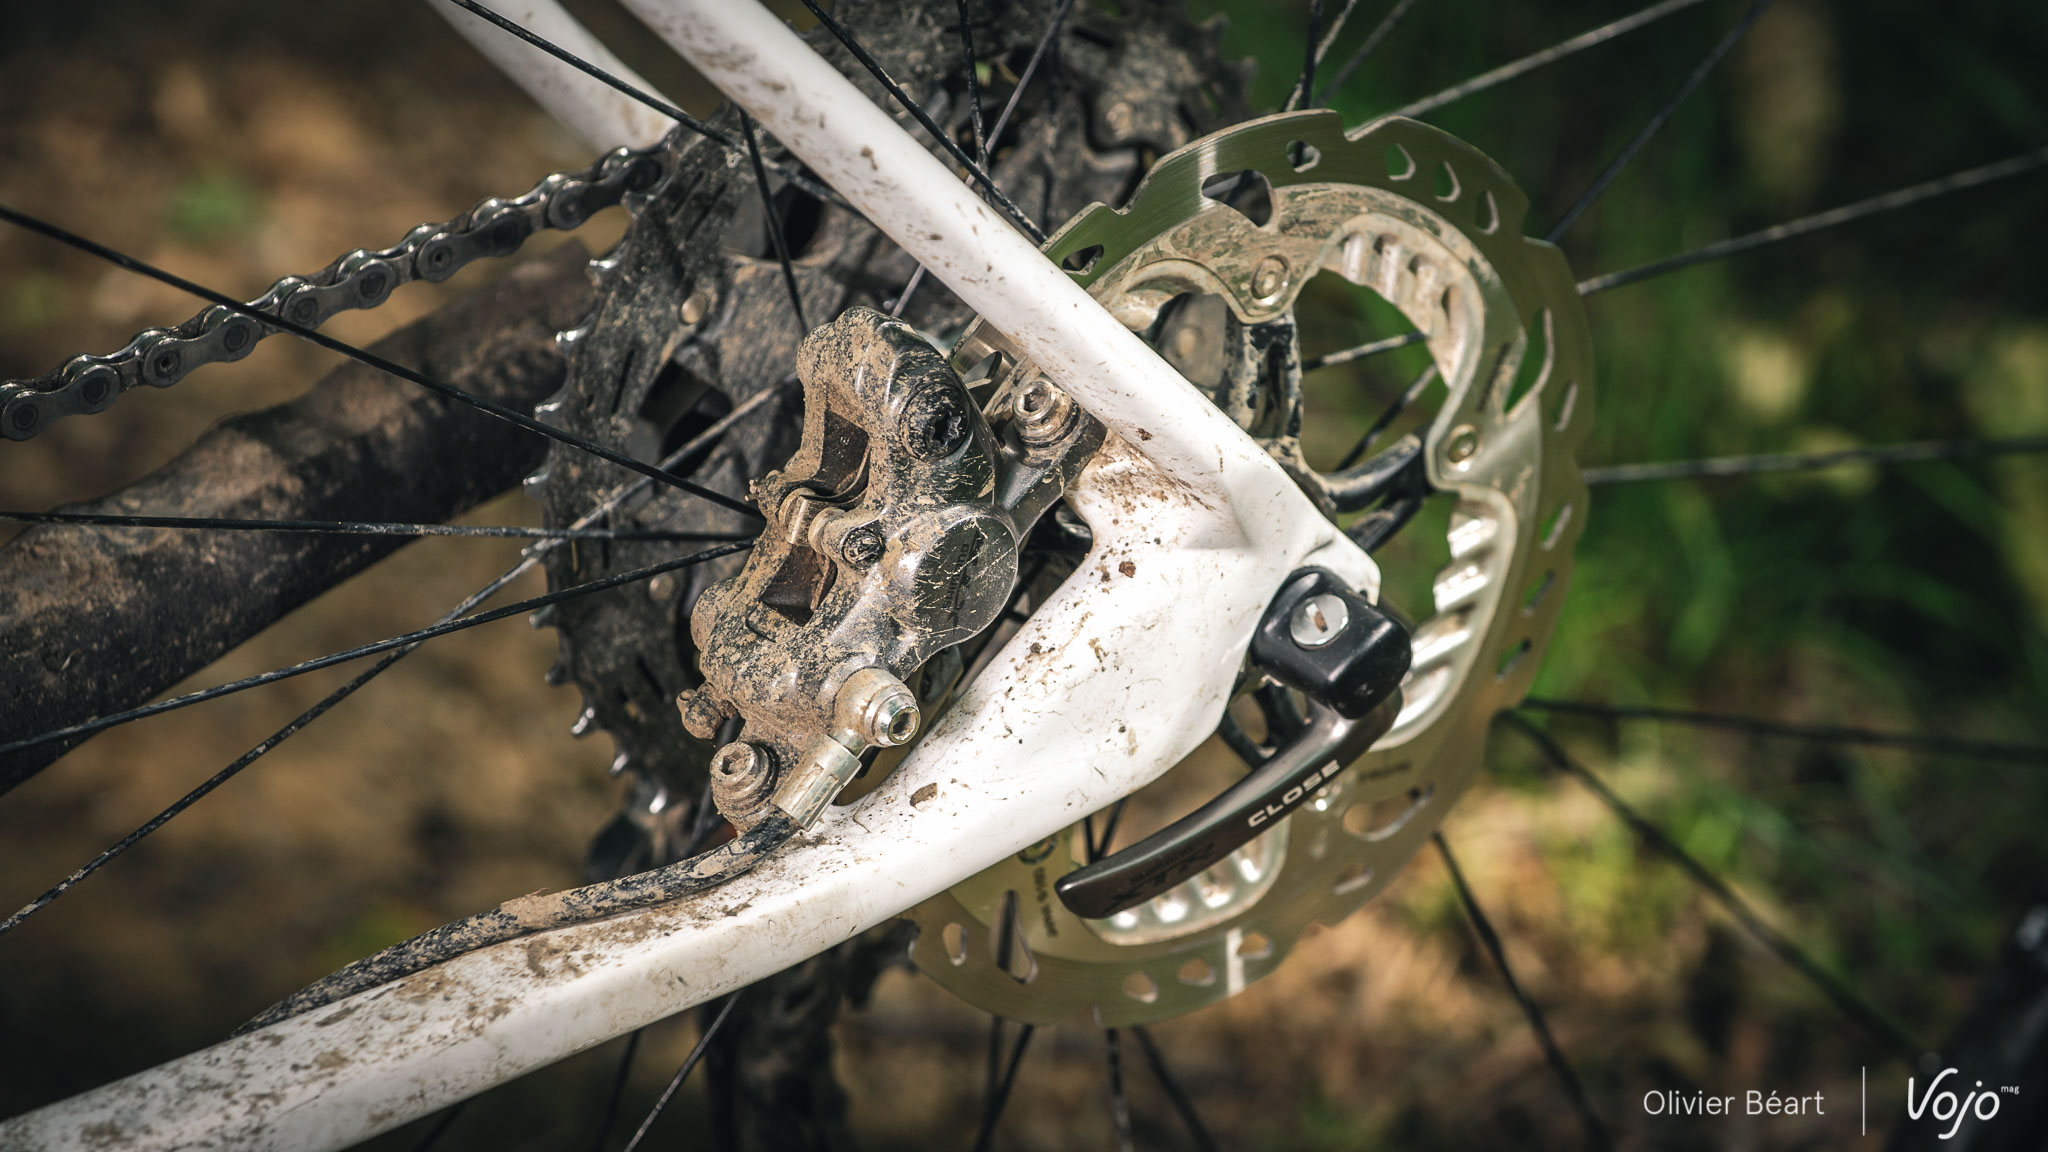 Shimano_XTR_Di2_Test_longue_duree_Copyright_Beart_VojoMag-1-7